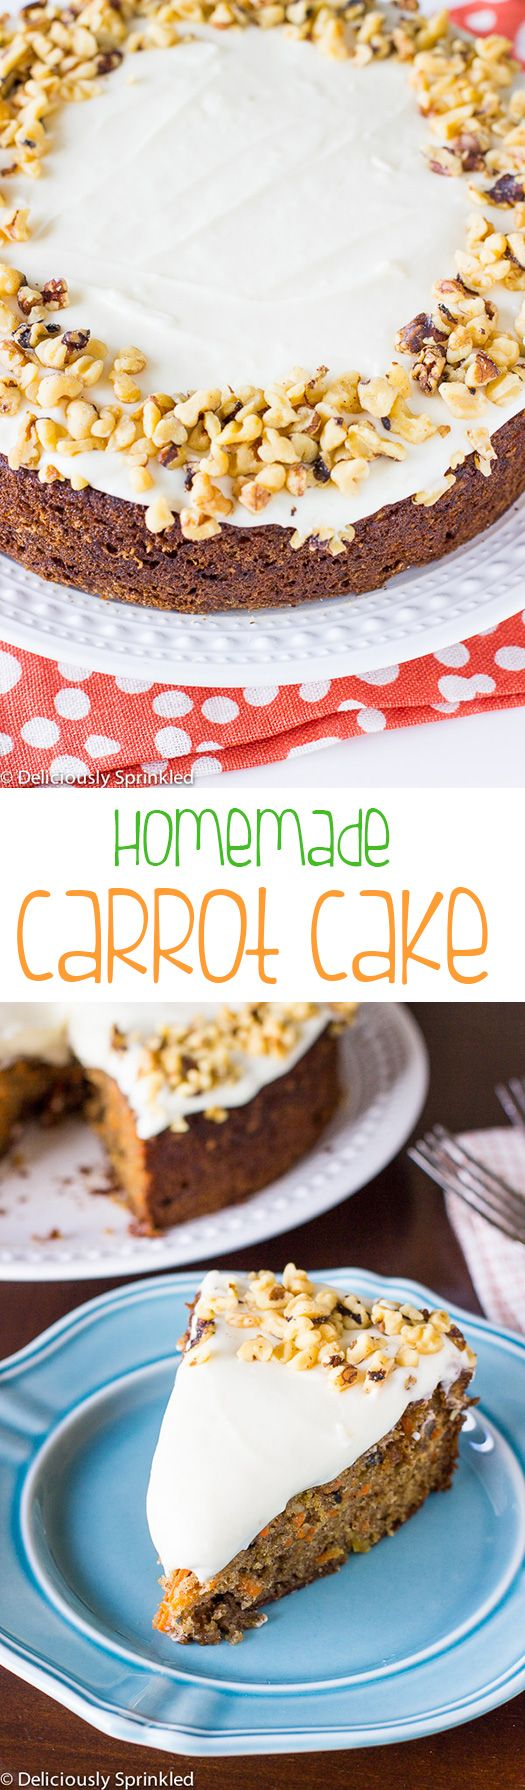 The BEST Homemade Carrot Cake